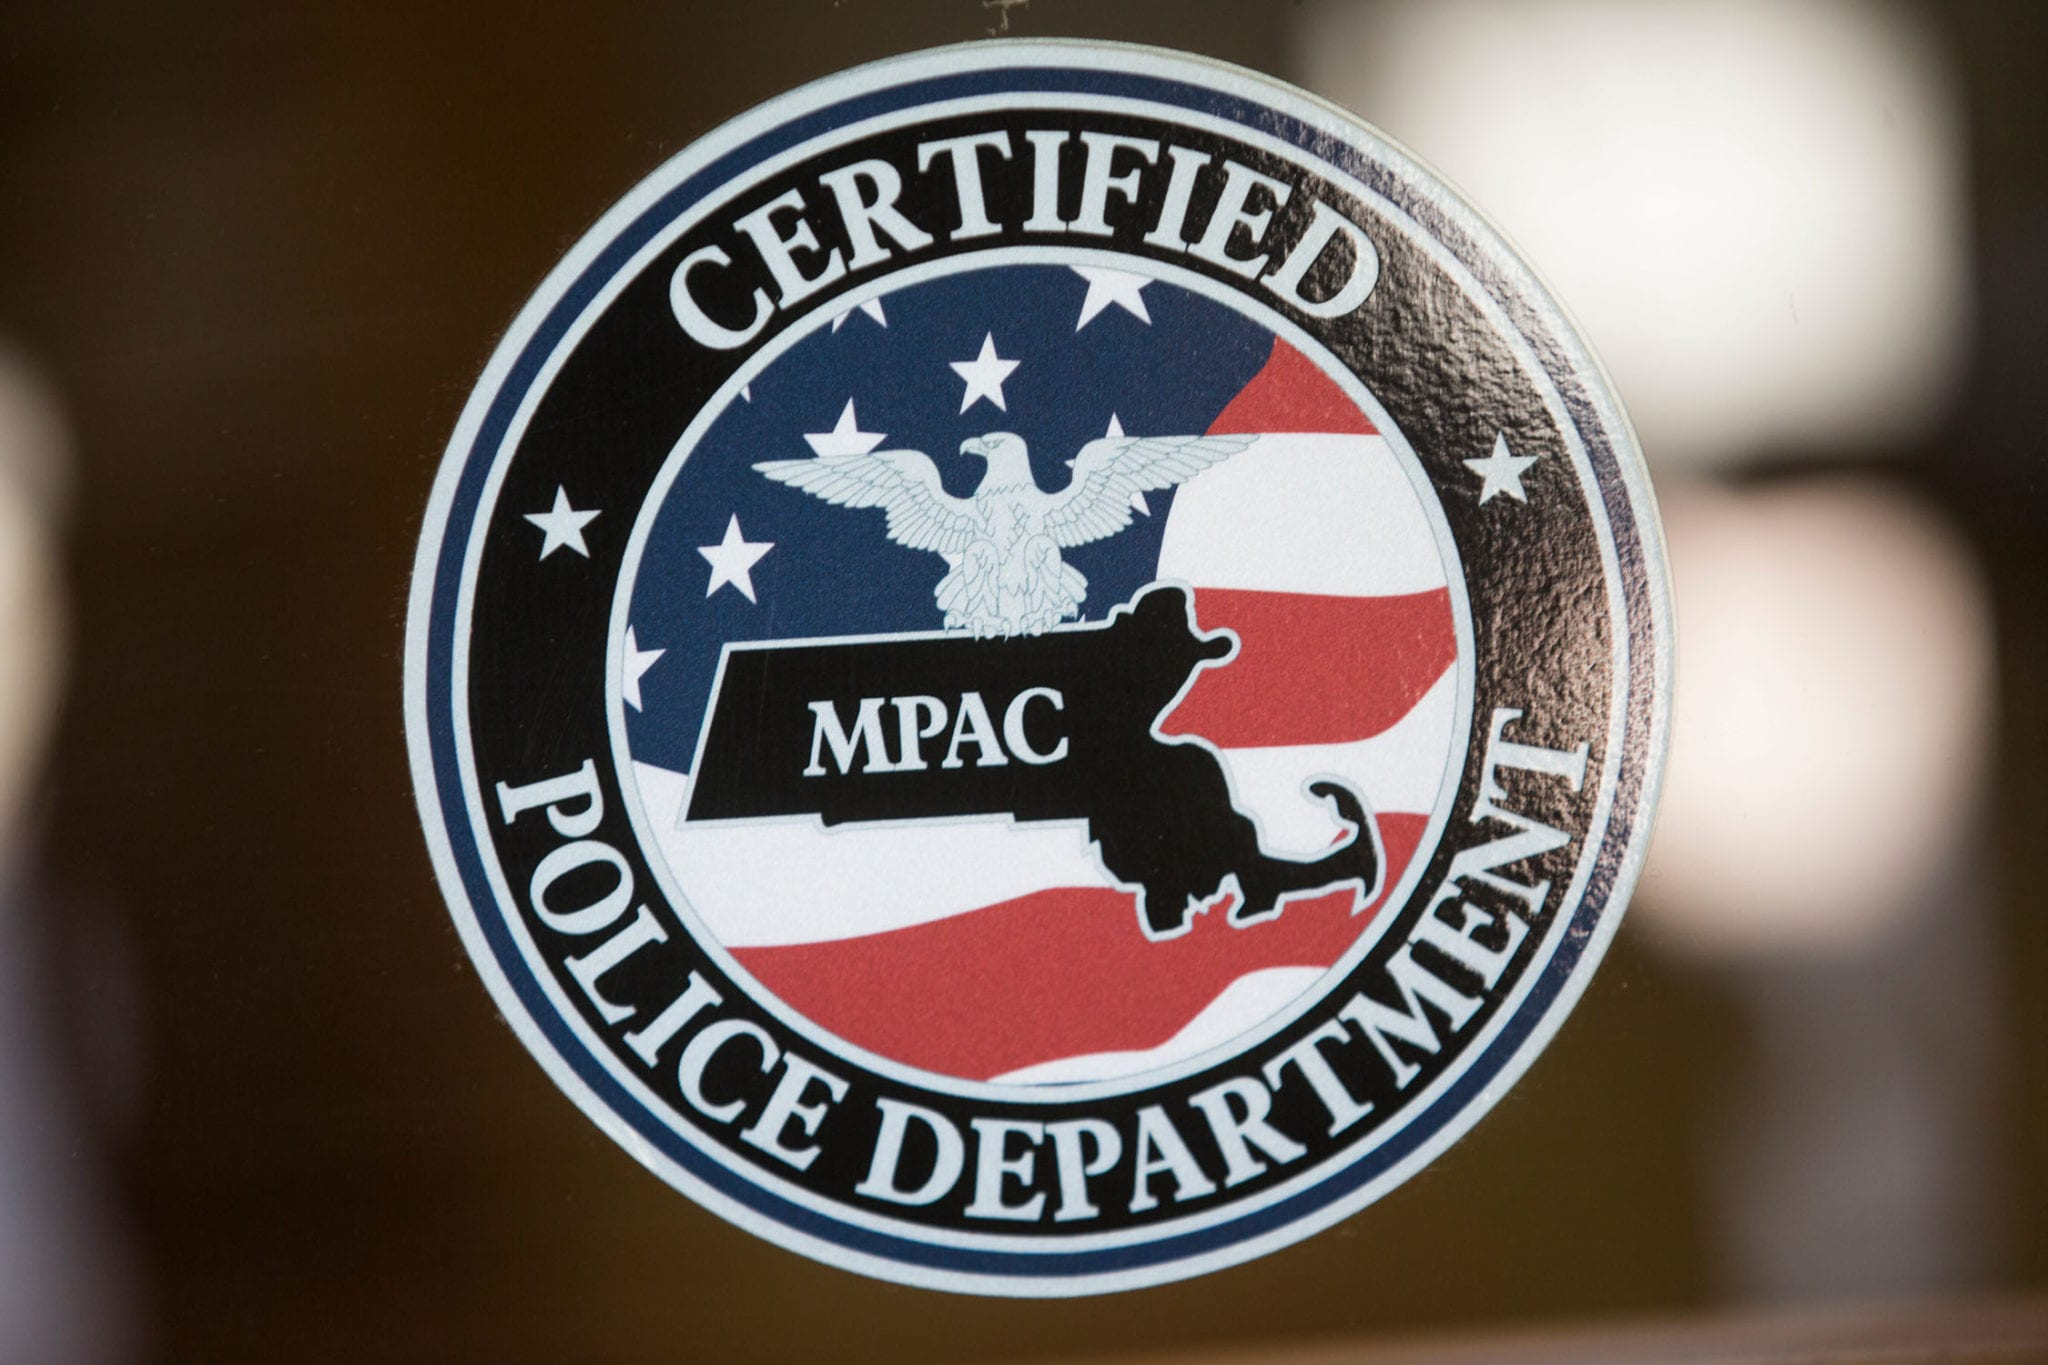 MPAC Certified Police Department